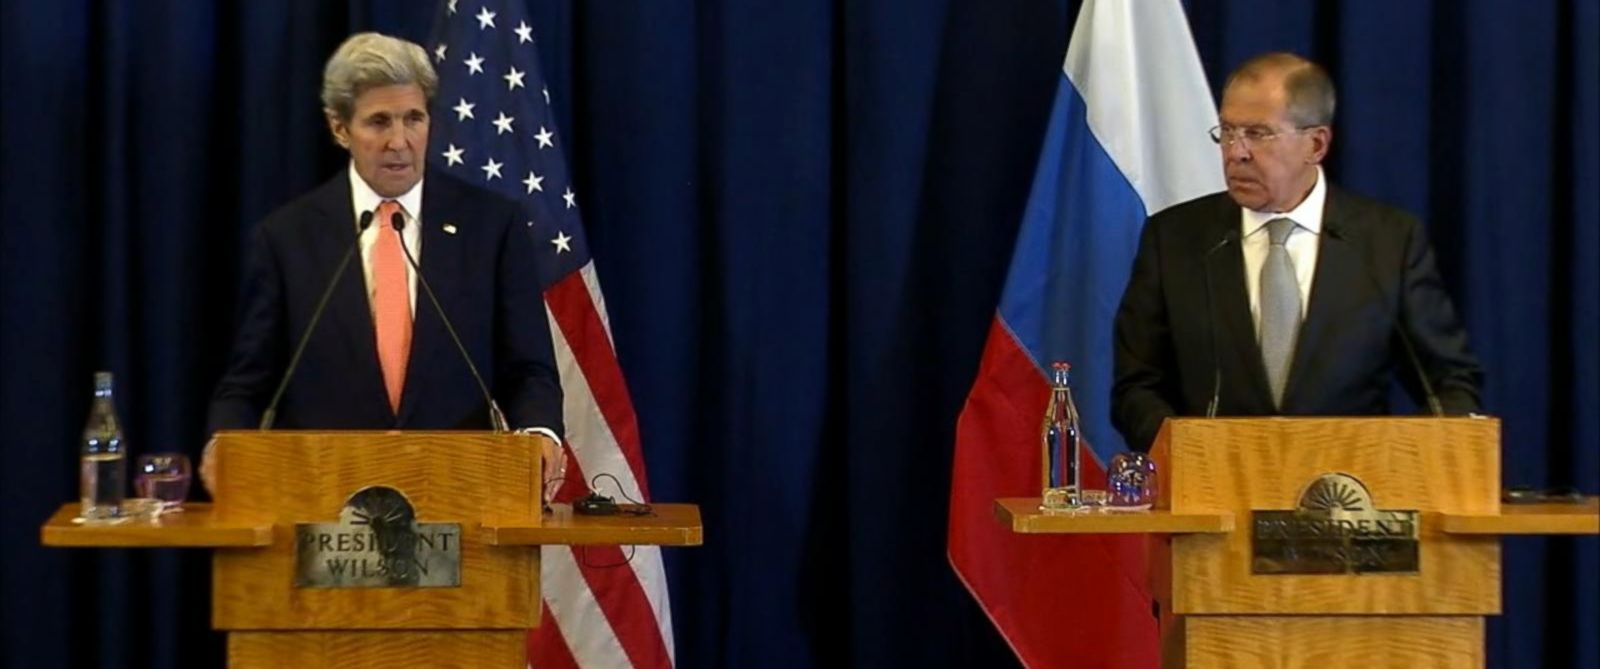 PHOTO: Secretary of State John Kerry, left, and Russian Foreign Minister Sergei Lavrov speak at a press conference, Sept. 9, 2016.